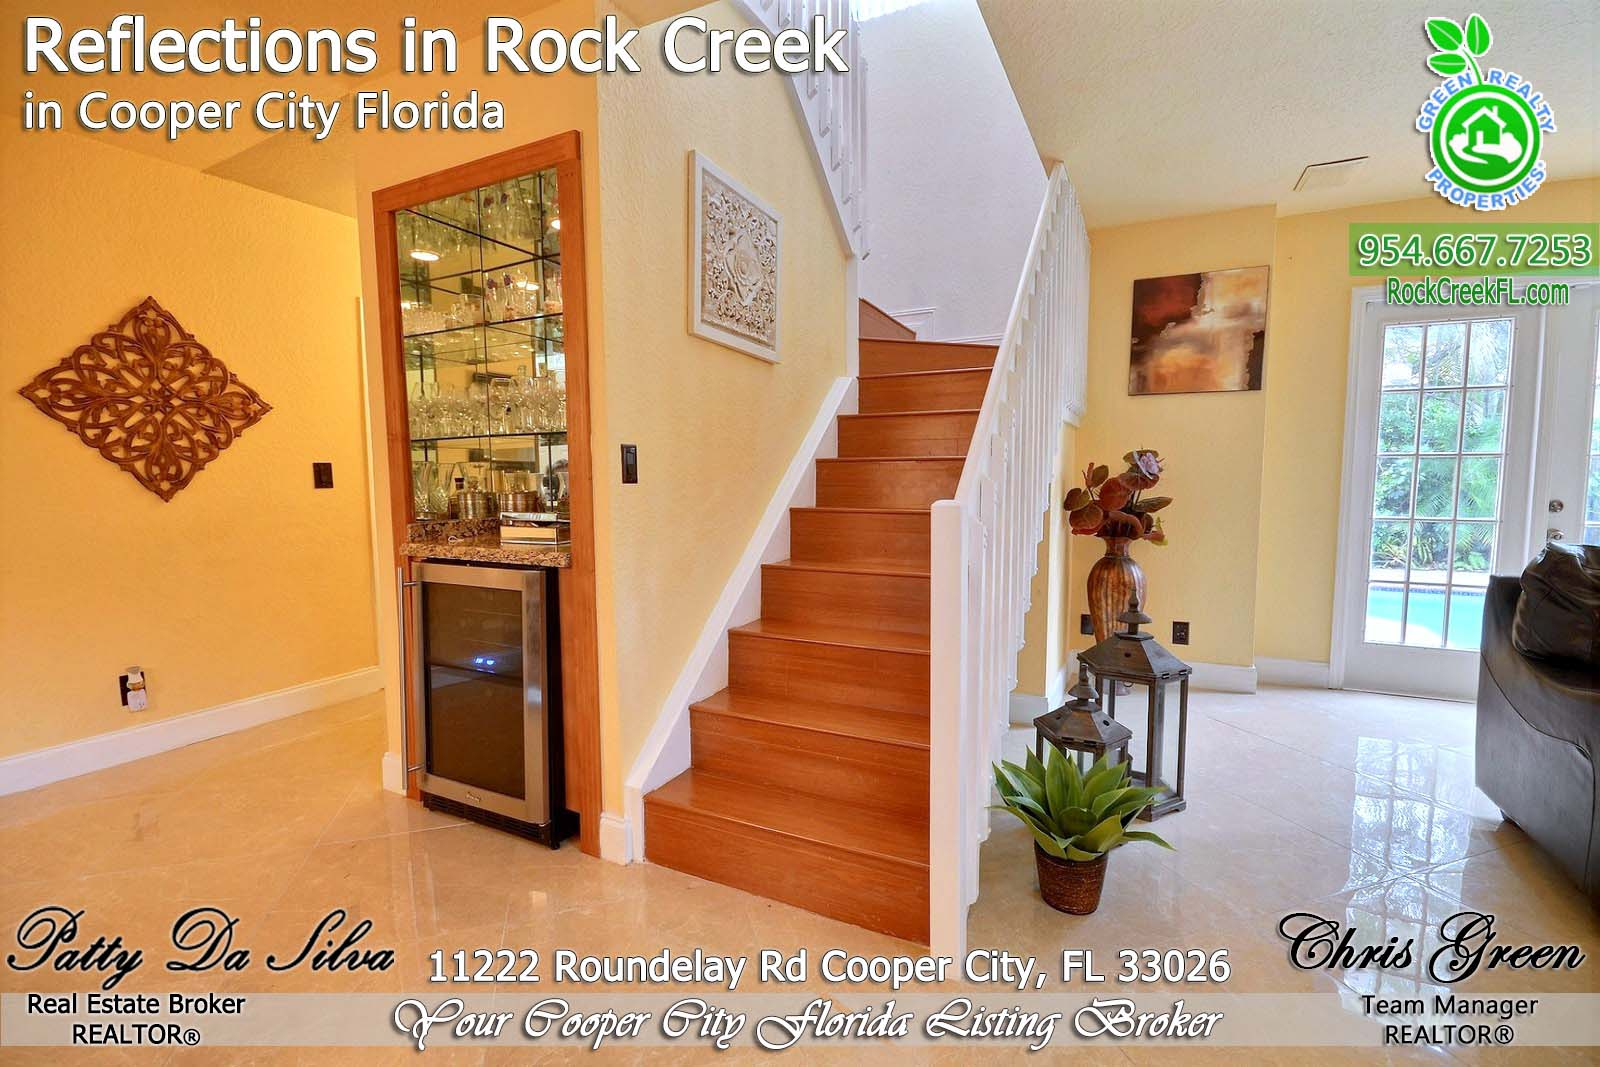 Cooper City Homes For Sale - Reflections in Rock Creek Homes Fo Sale (23)